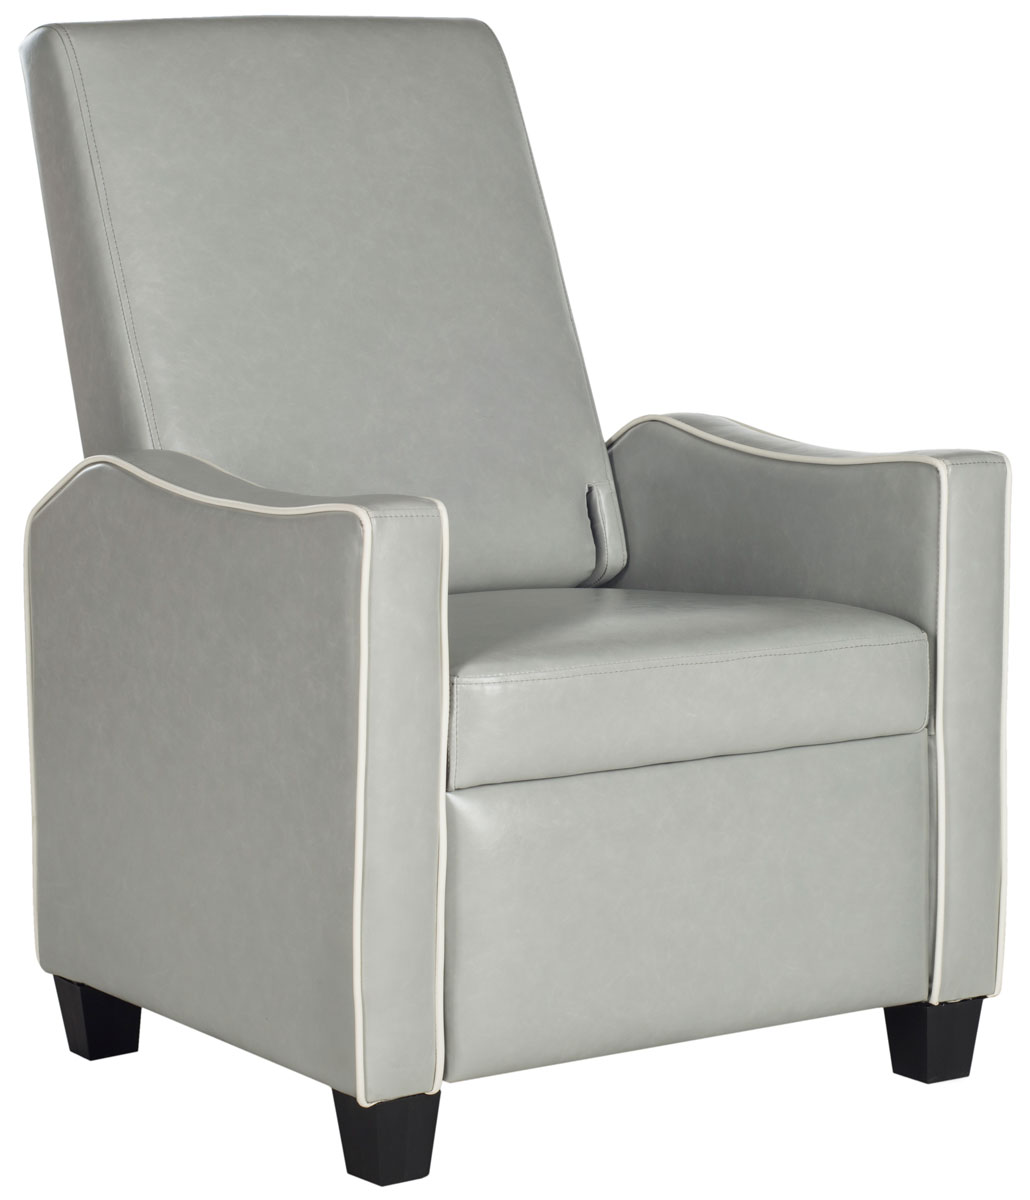 FOX6208A Recliners - Furniture by Safavieh